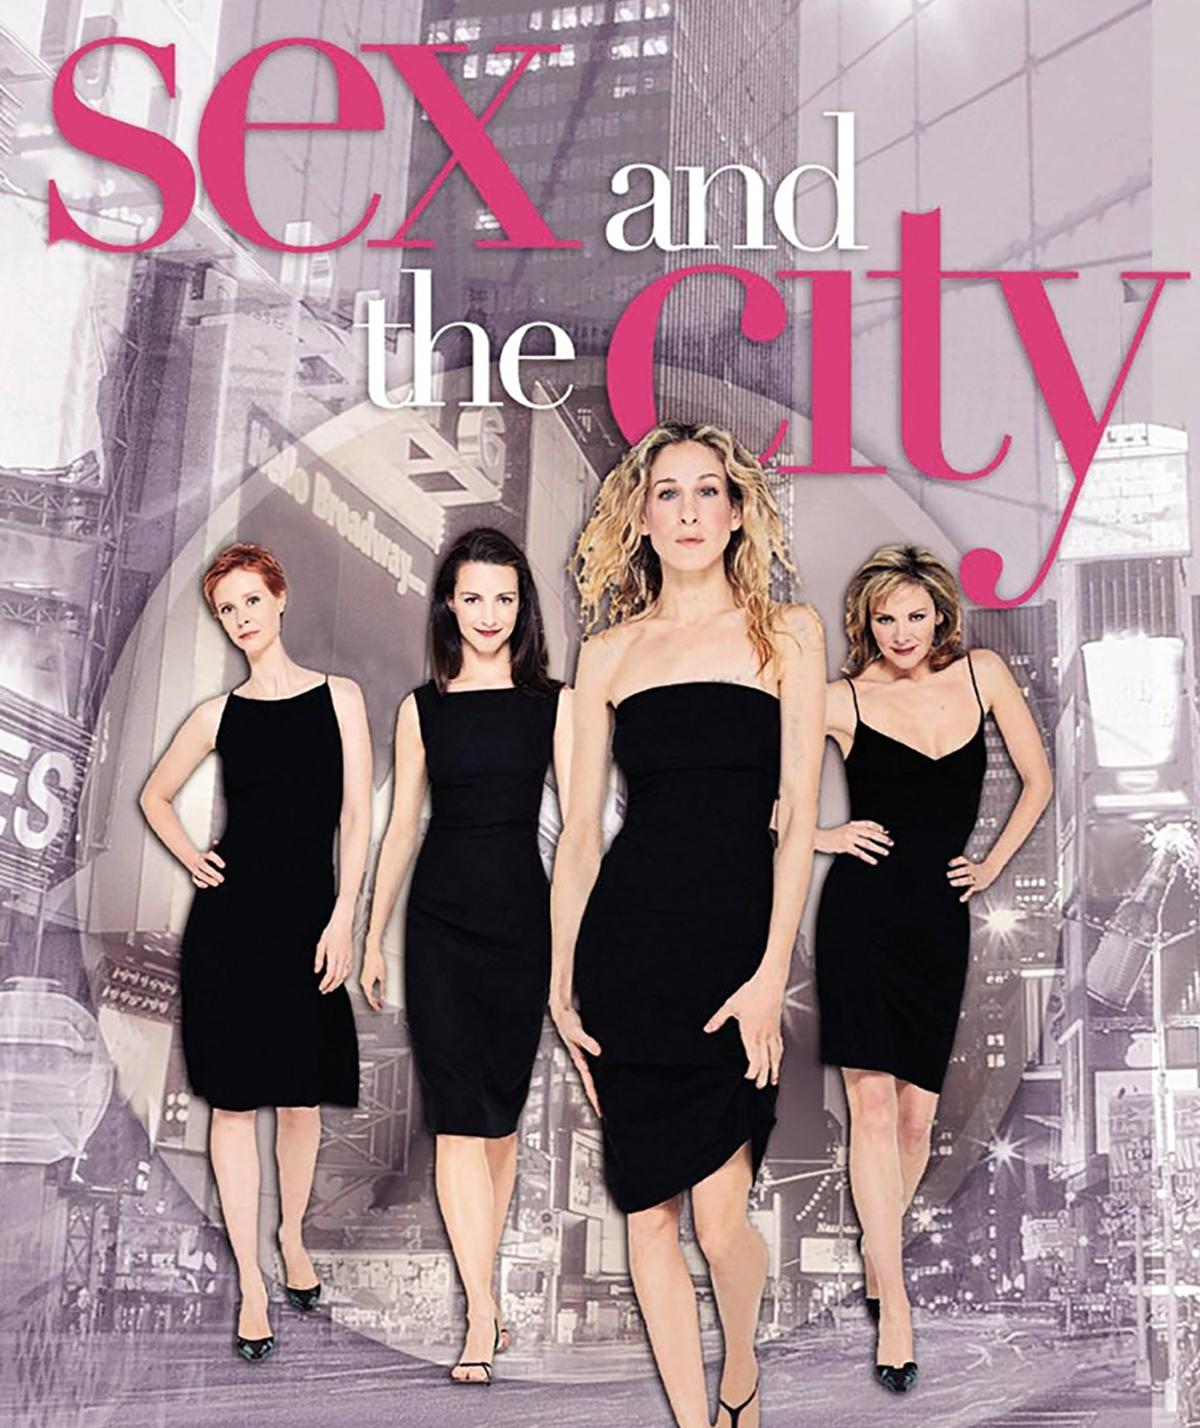 sex-and-the-city-amazon-1